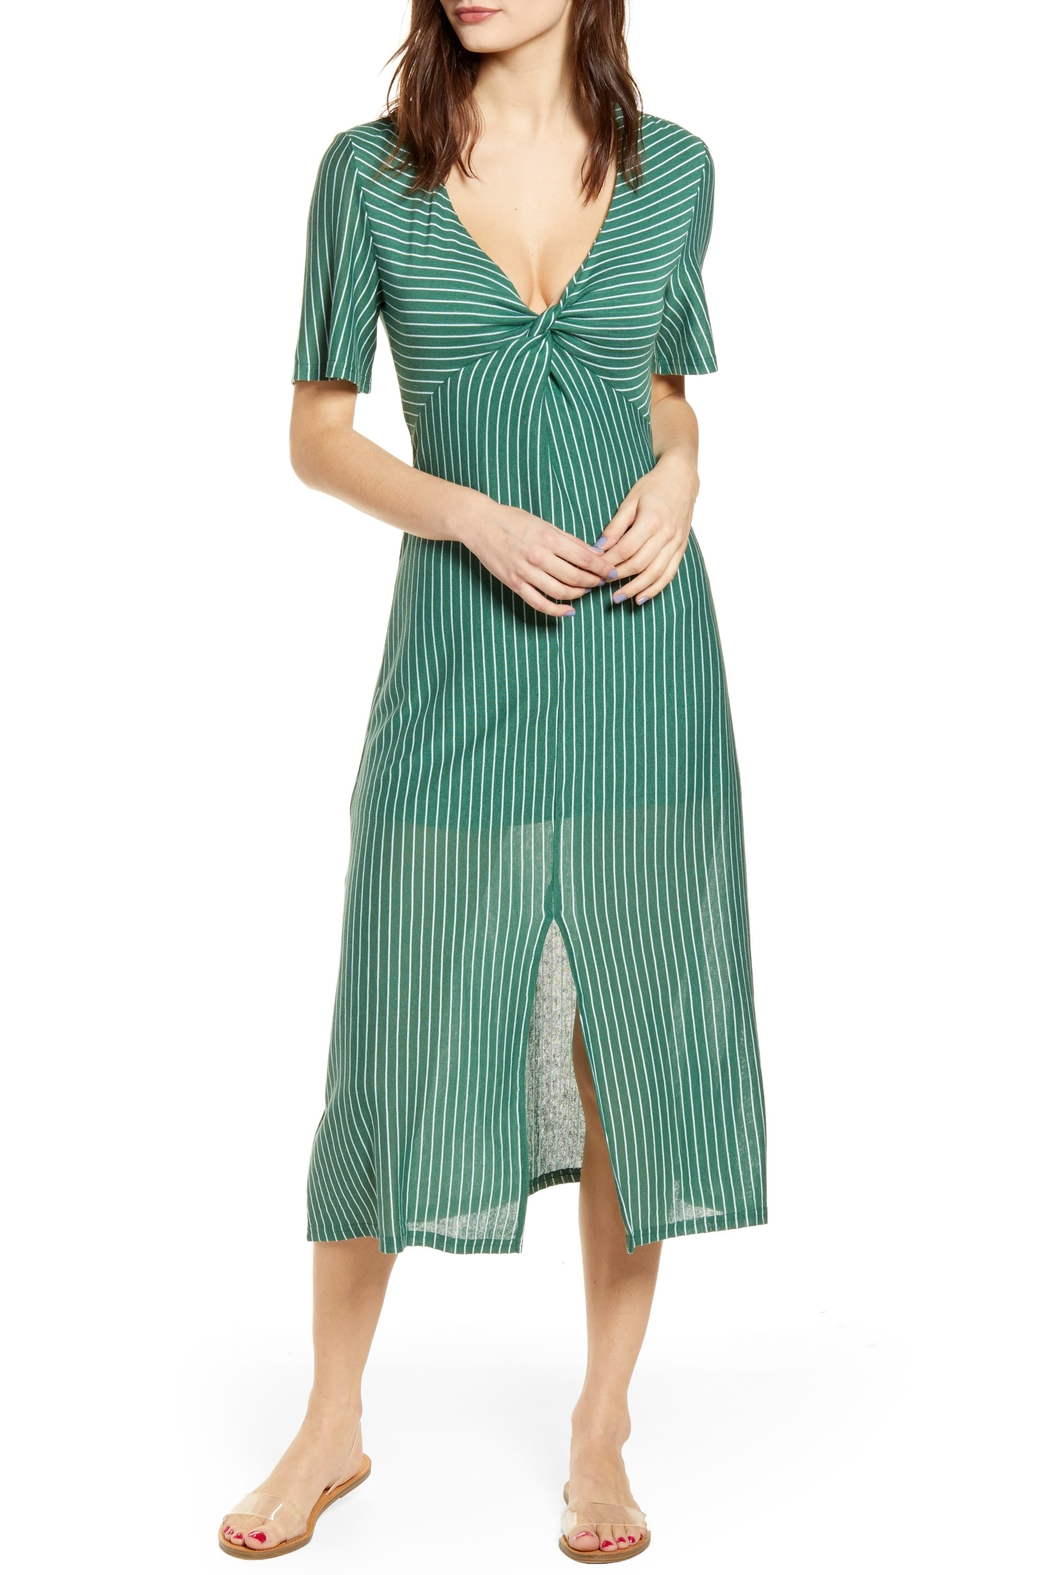 Mink Pink Twist-Front Strip Midi-Dress - Front Cropped Image